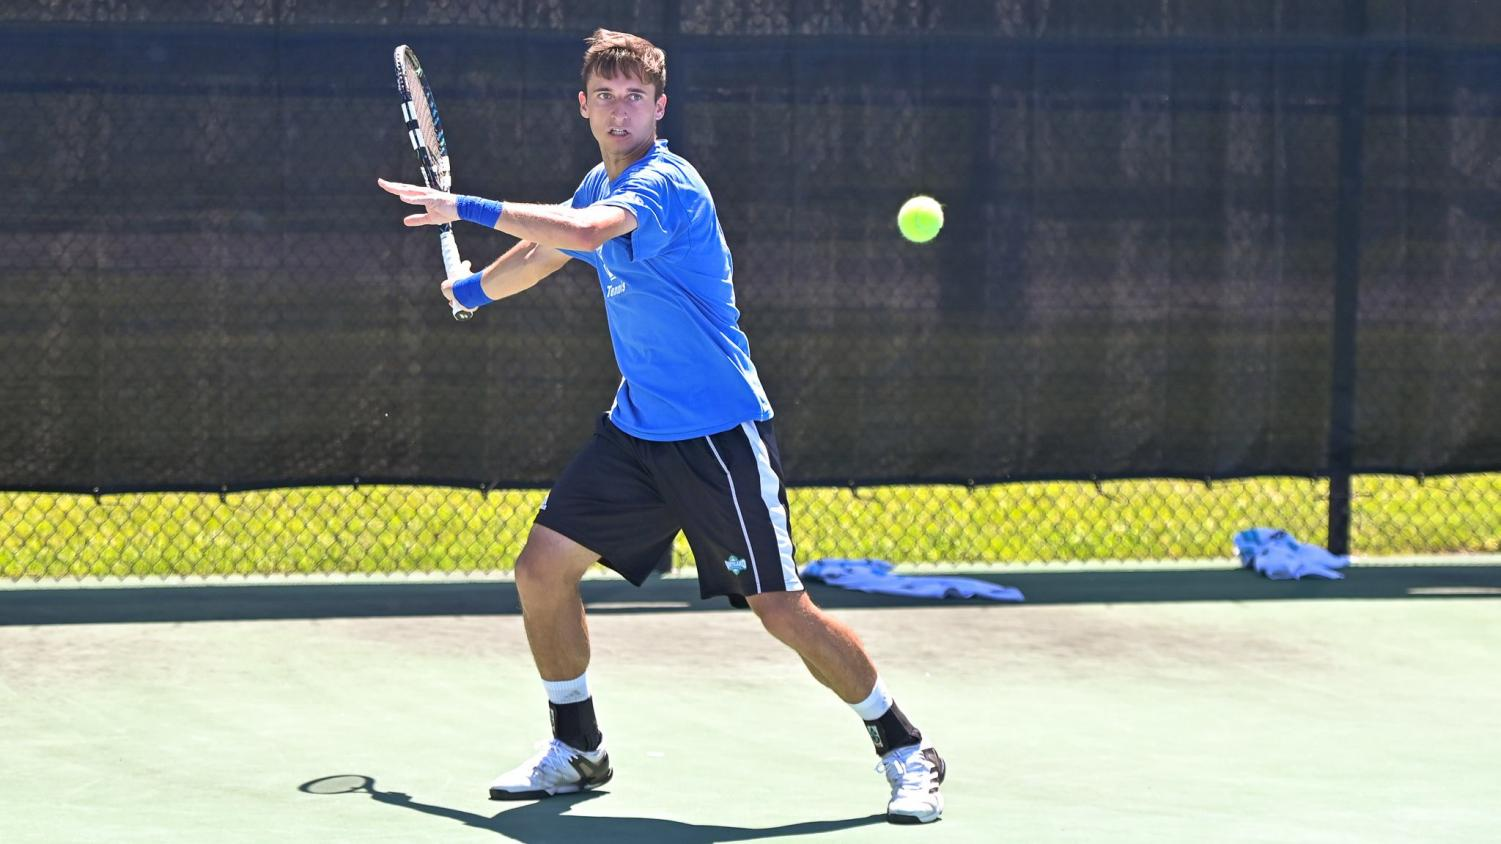 Image courtesy of Tim Hannah/Islander Athletics- Carlos Pedrosa Cuevas representing the Islanders in the men's tennis match against the University of the Incarnate Word on April 9, their first win in the Southland Conference.